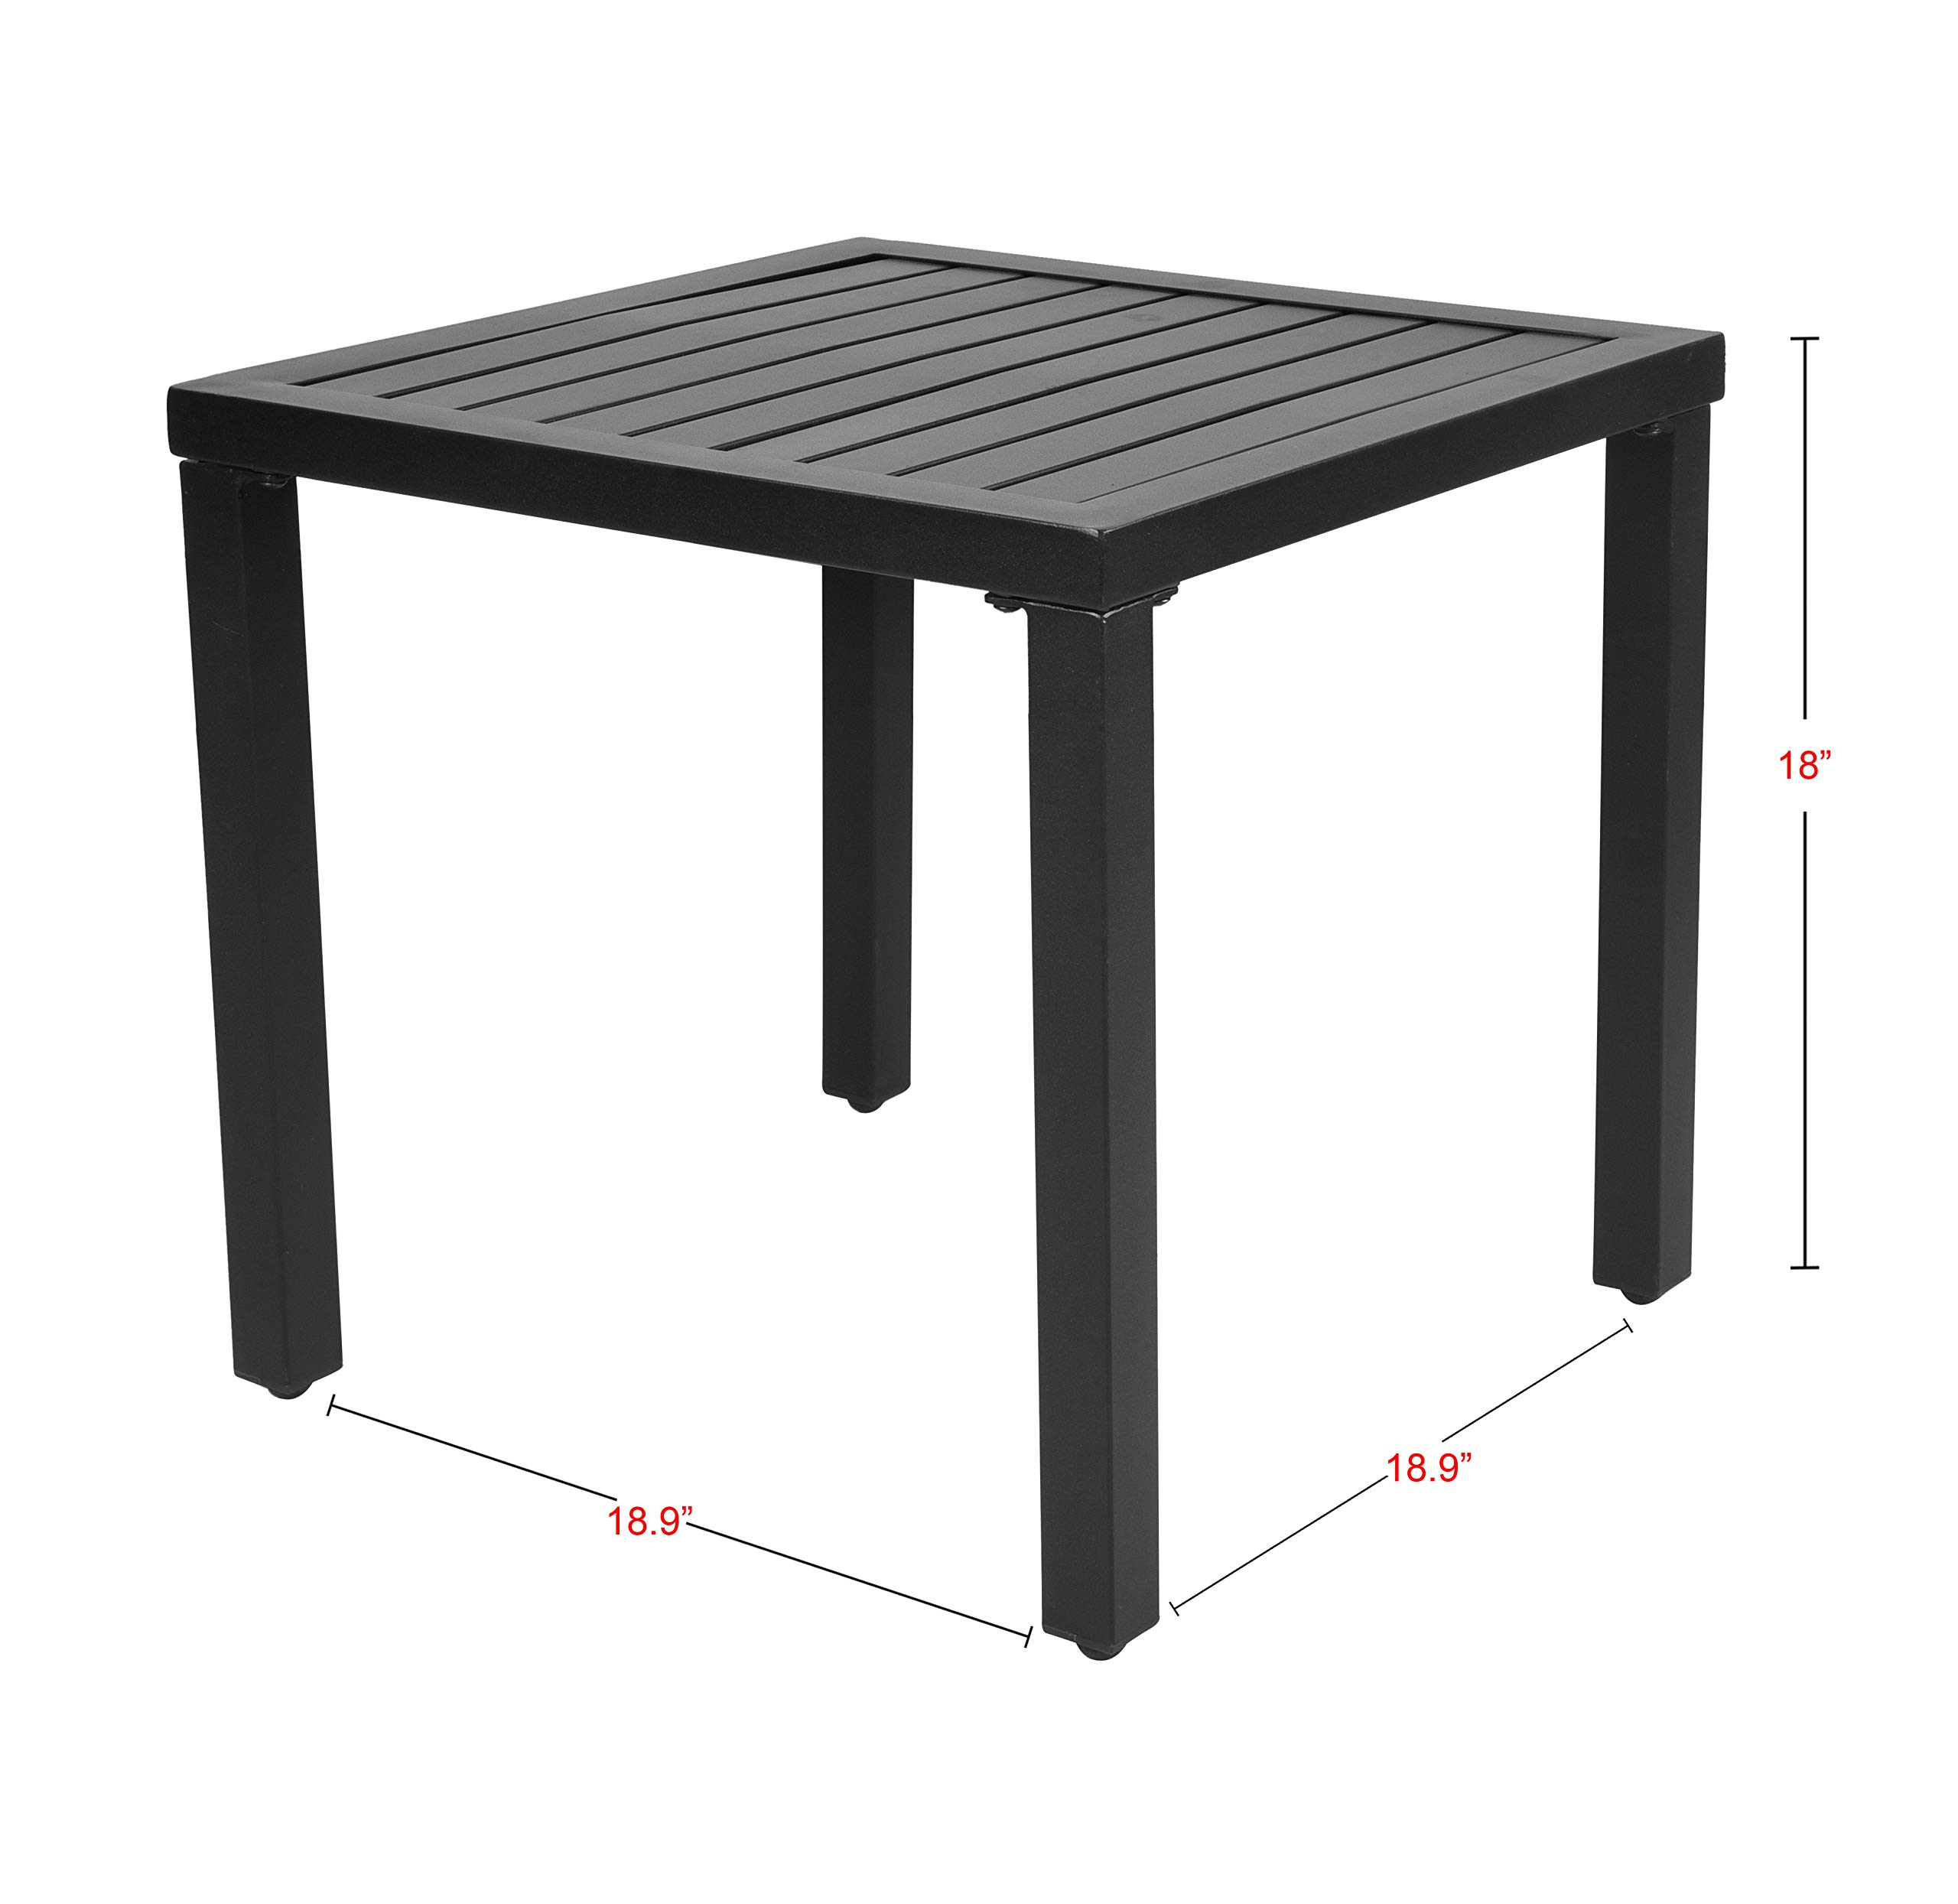 EMERIT Outdoor Metal Square Patio Bistro Side End Table,Black by EMERIT (Image #2)